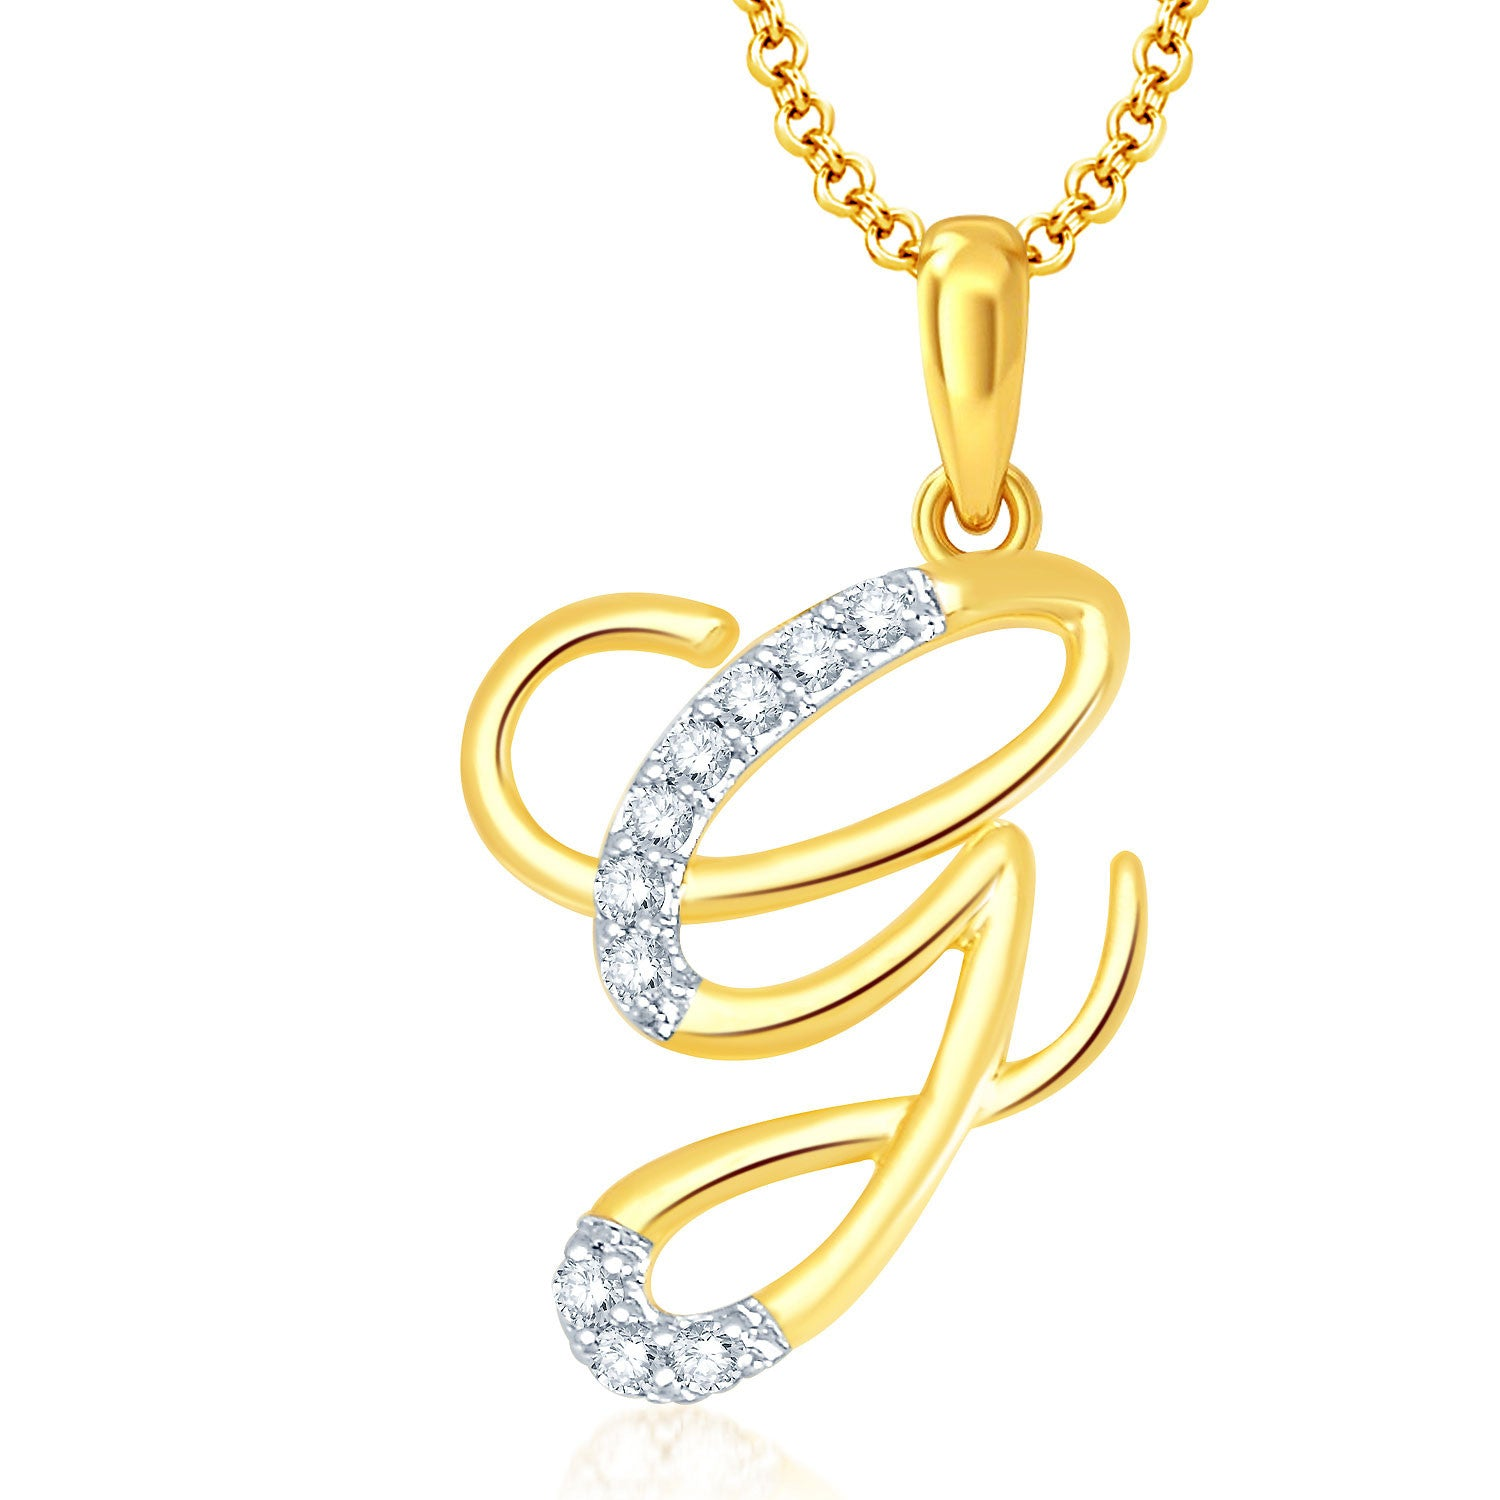 Pissara letter g gold and rhodium plated cz alphabet pendant pissara letter g gold and rhodium plated cz alphabet pendant aloadofball Image collections